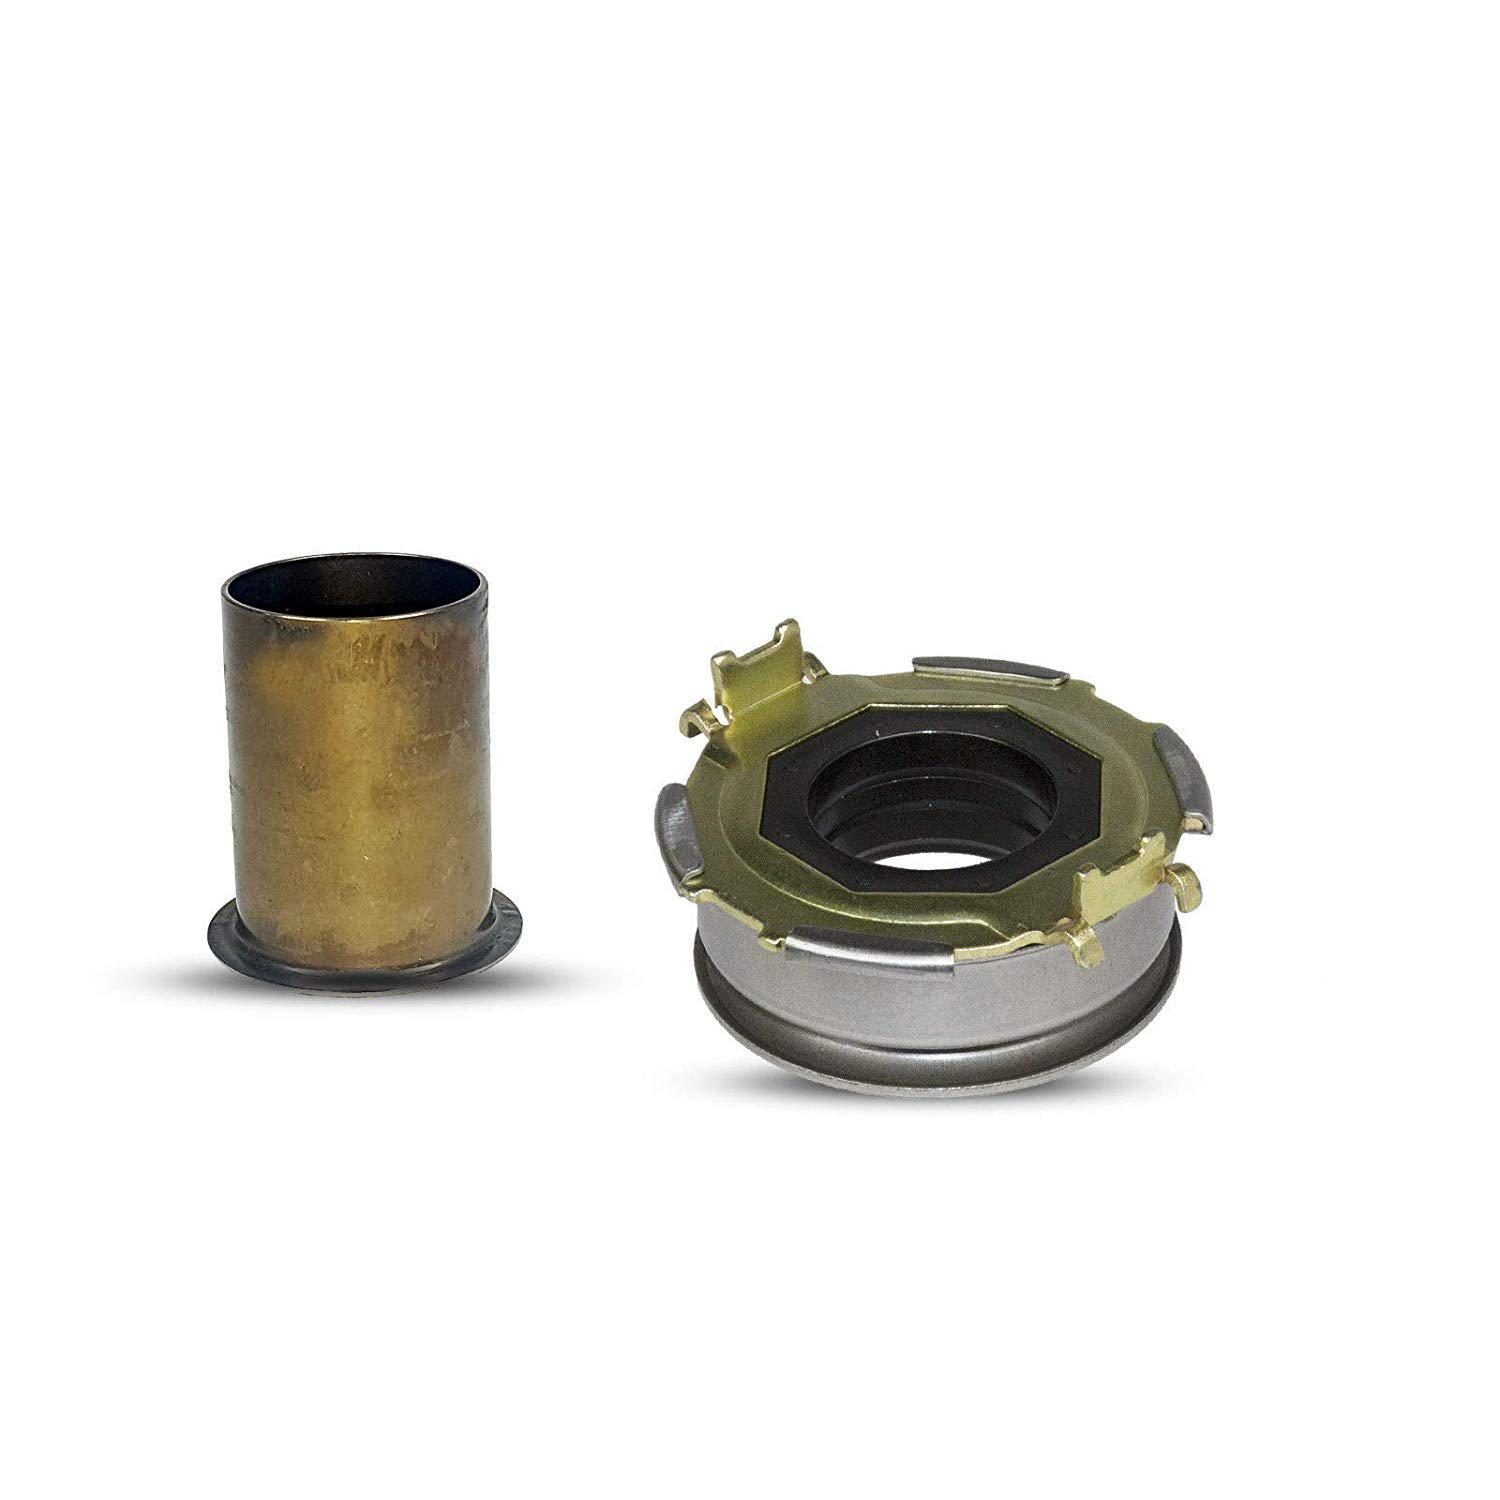 Release Bearing And Sleeve Repair Kit works with Subaru Impreza Forester Limited Sport Base I Premium Touring Limited X Xs Xsl Xt WRX Sti 1996-2014 2.0L H4 2.5L H4 3.0L H6